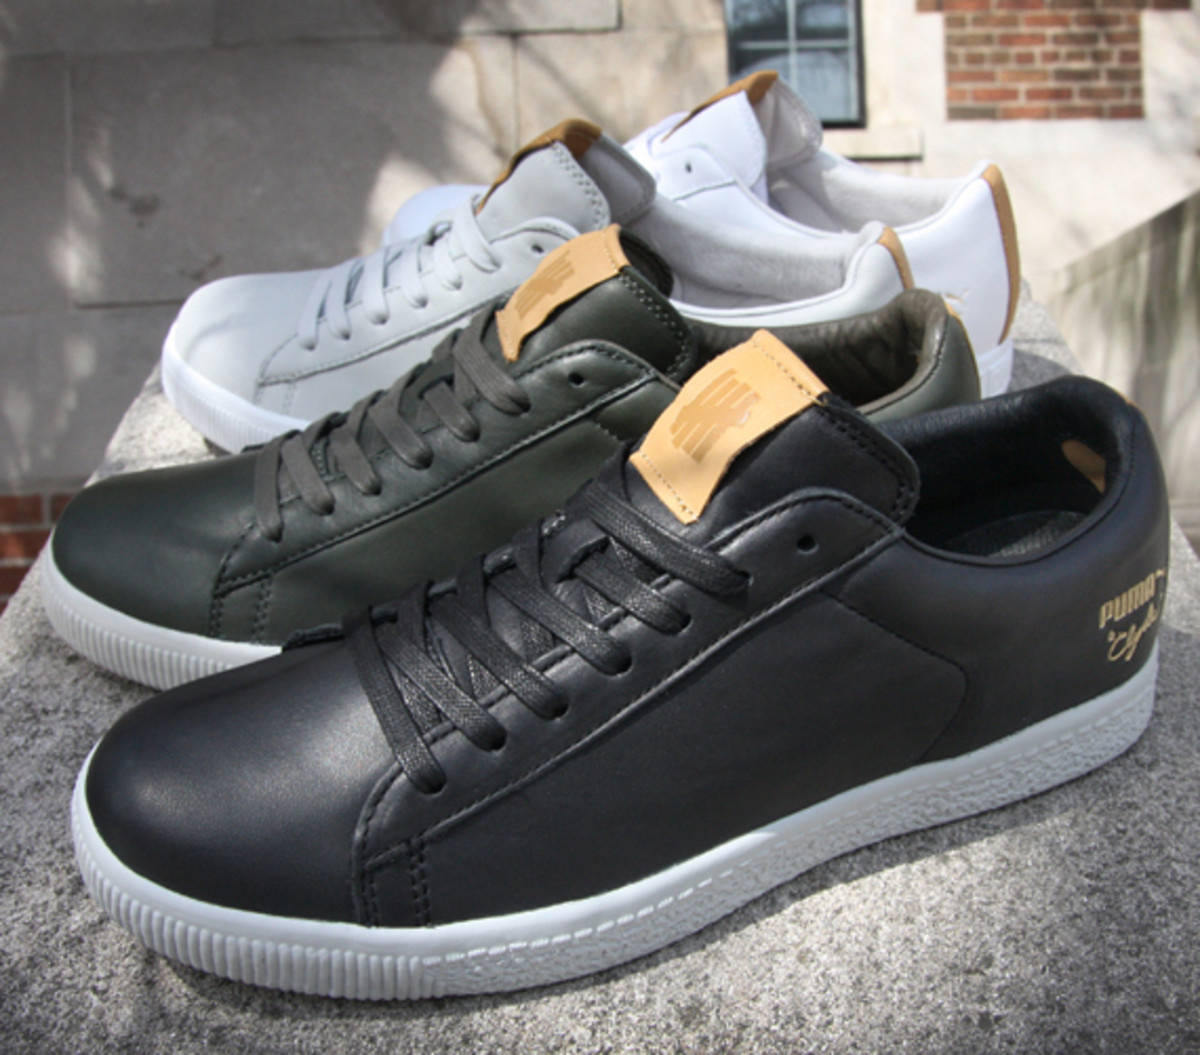 separation shoes a4184 1e41b UNDEFEATED x PUMA Clyde - Spring 2011 Collection - Freshness Mag